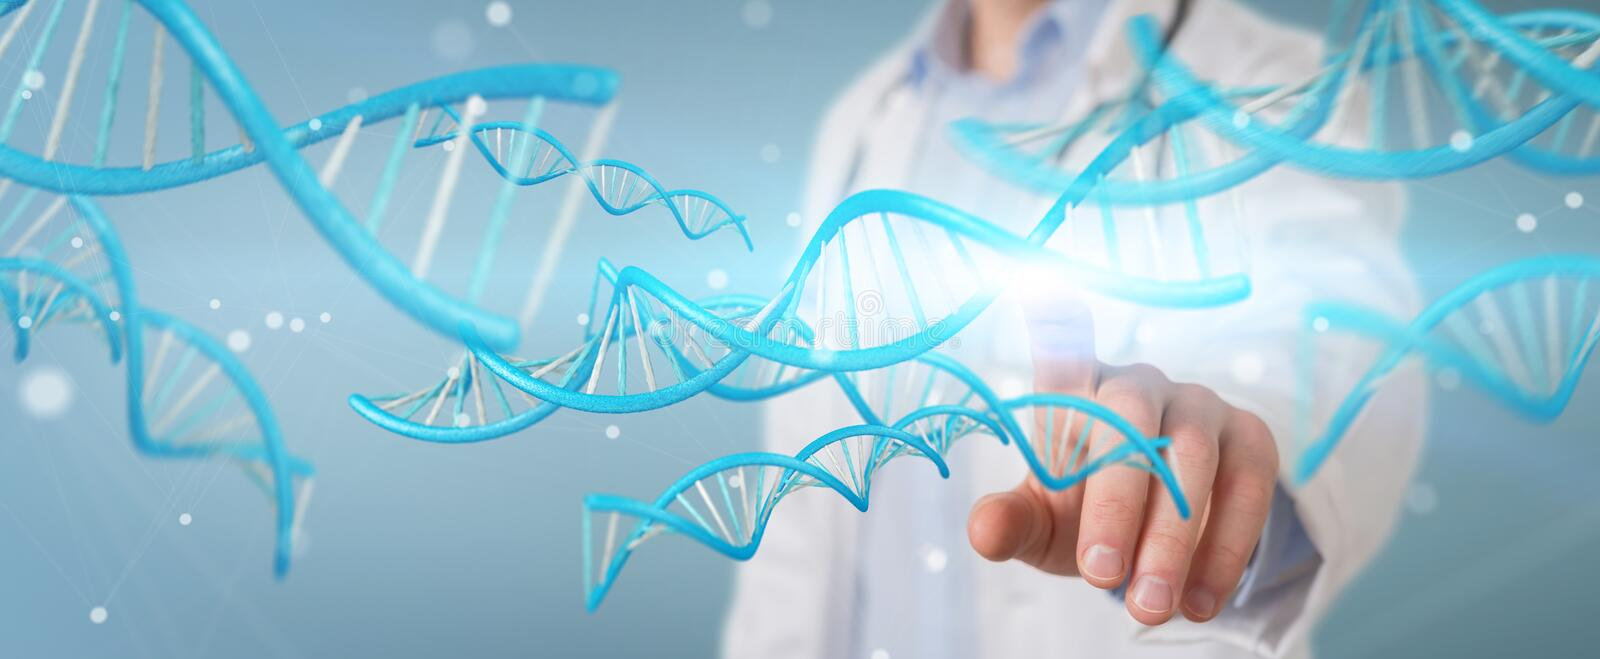 Doctor holding blue digital DNA structure 3D rendering royalty free illustration